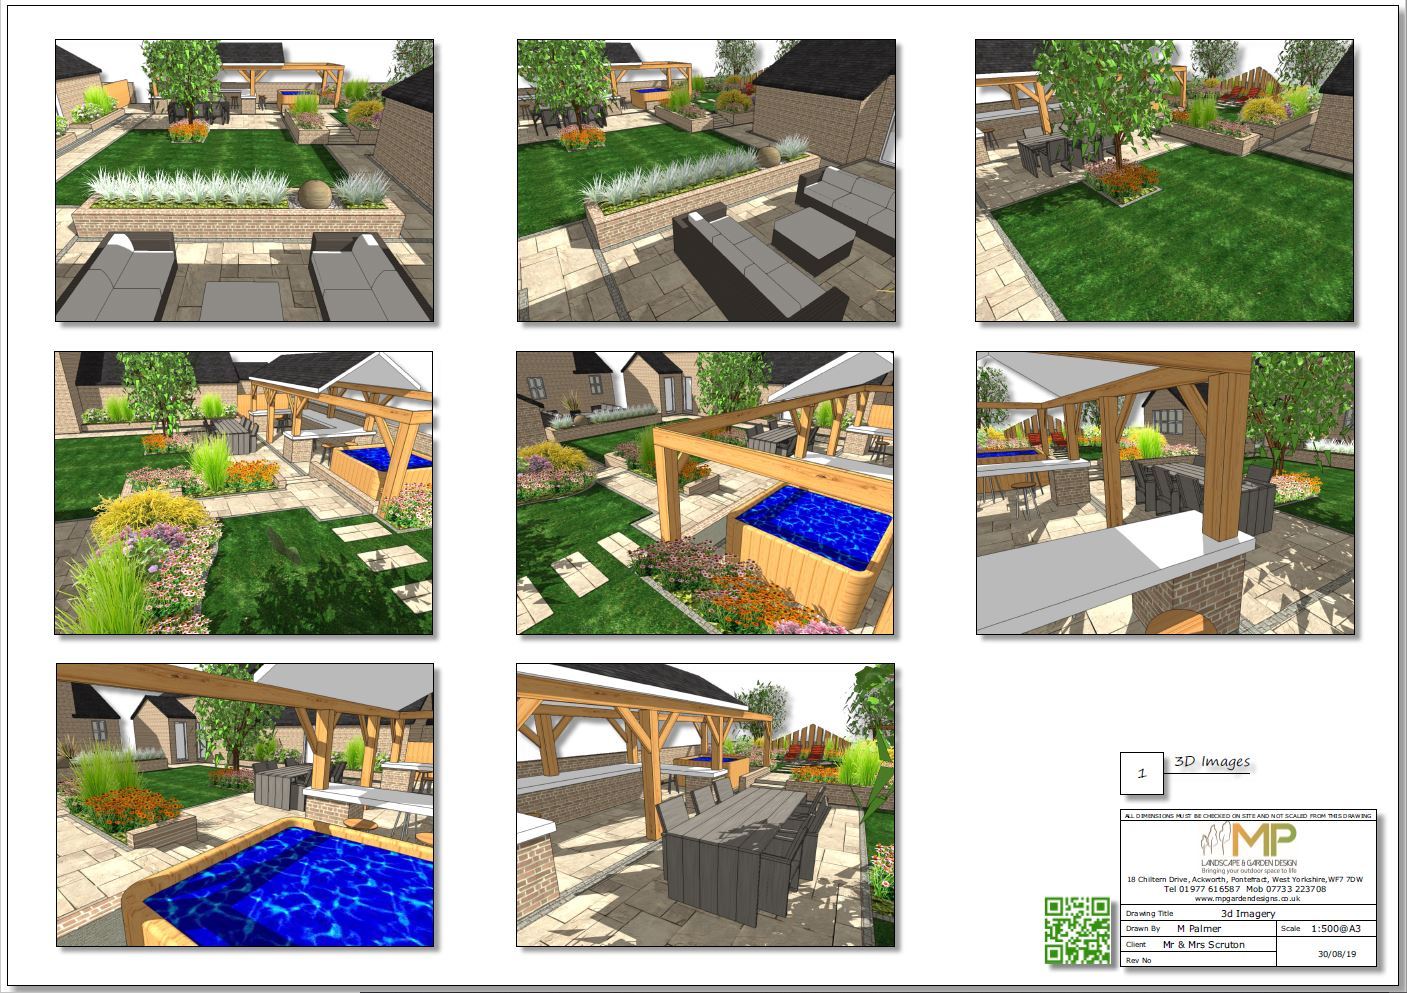 3. Garden layout plan 3D images for a property in Pollington